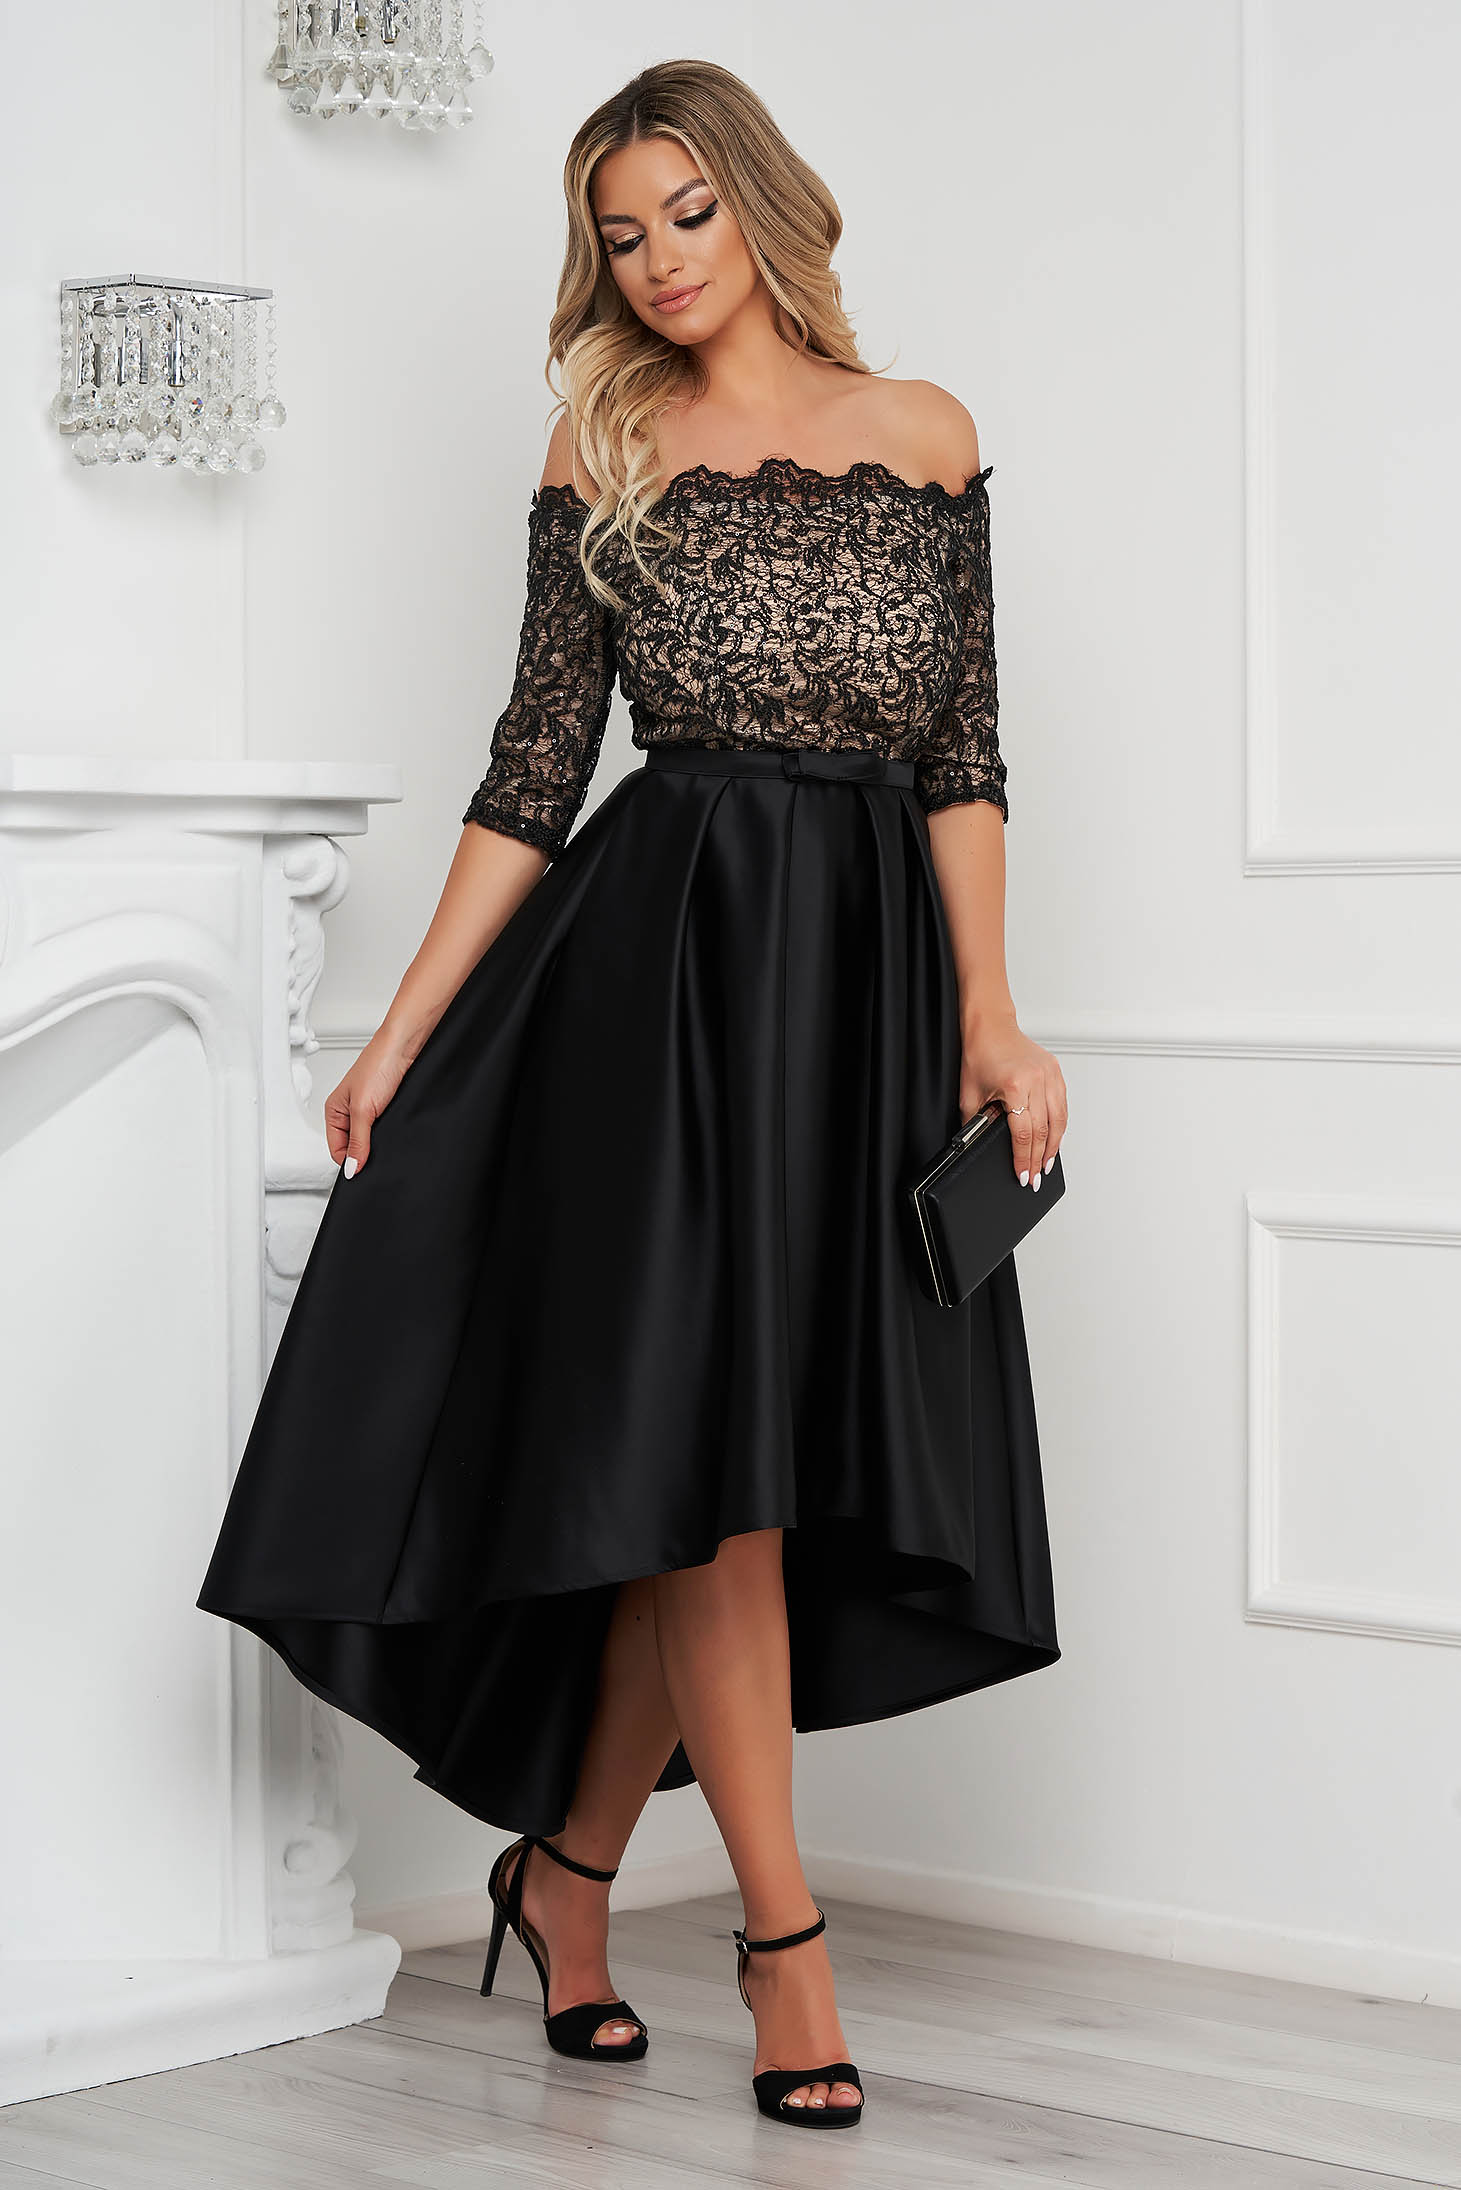 StarShinerS black dress cloche midi from satin naked shoulders with laced sleeves with tie back belt